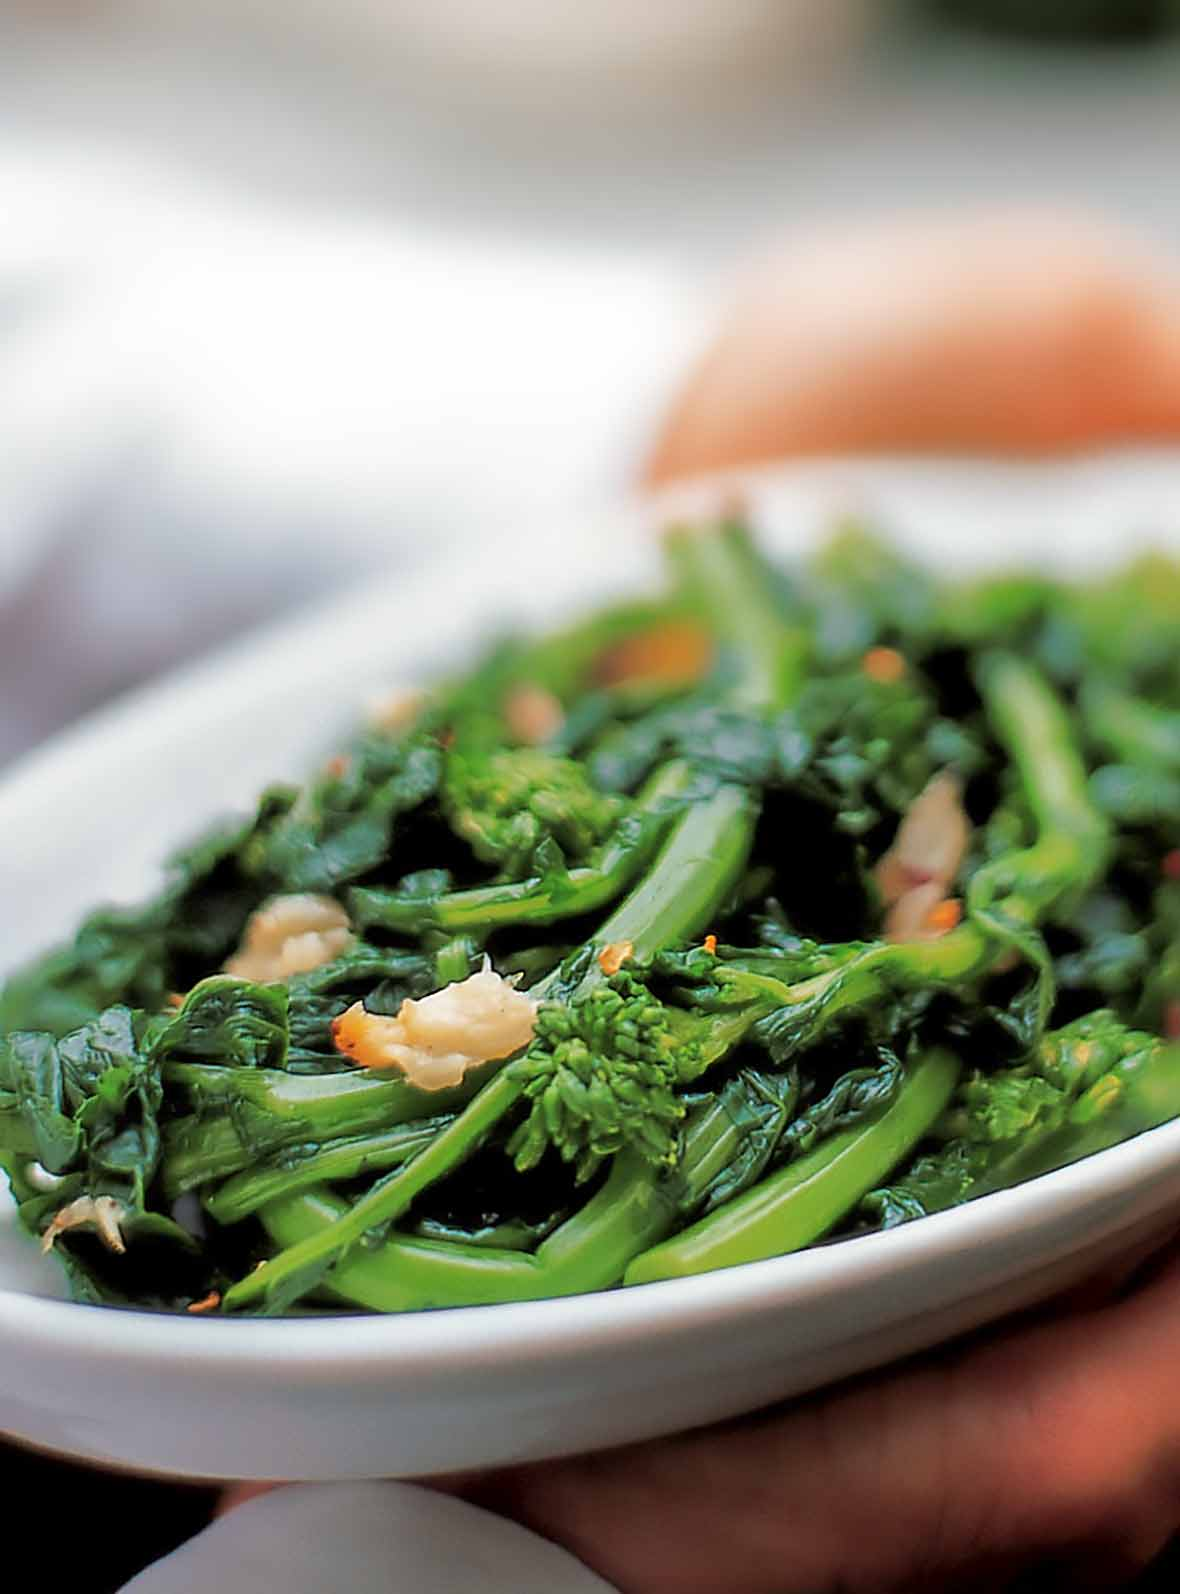 A white platter filled with broccoli rabe, topped with roasted garlic and red pepper flakes.